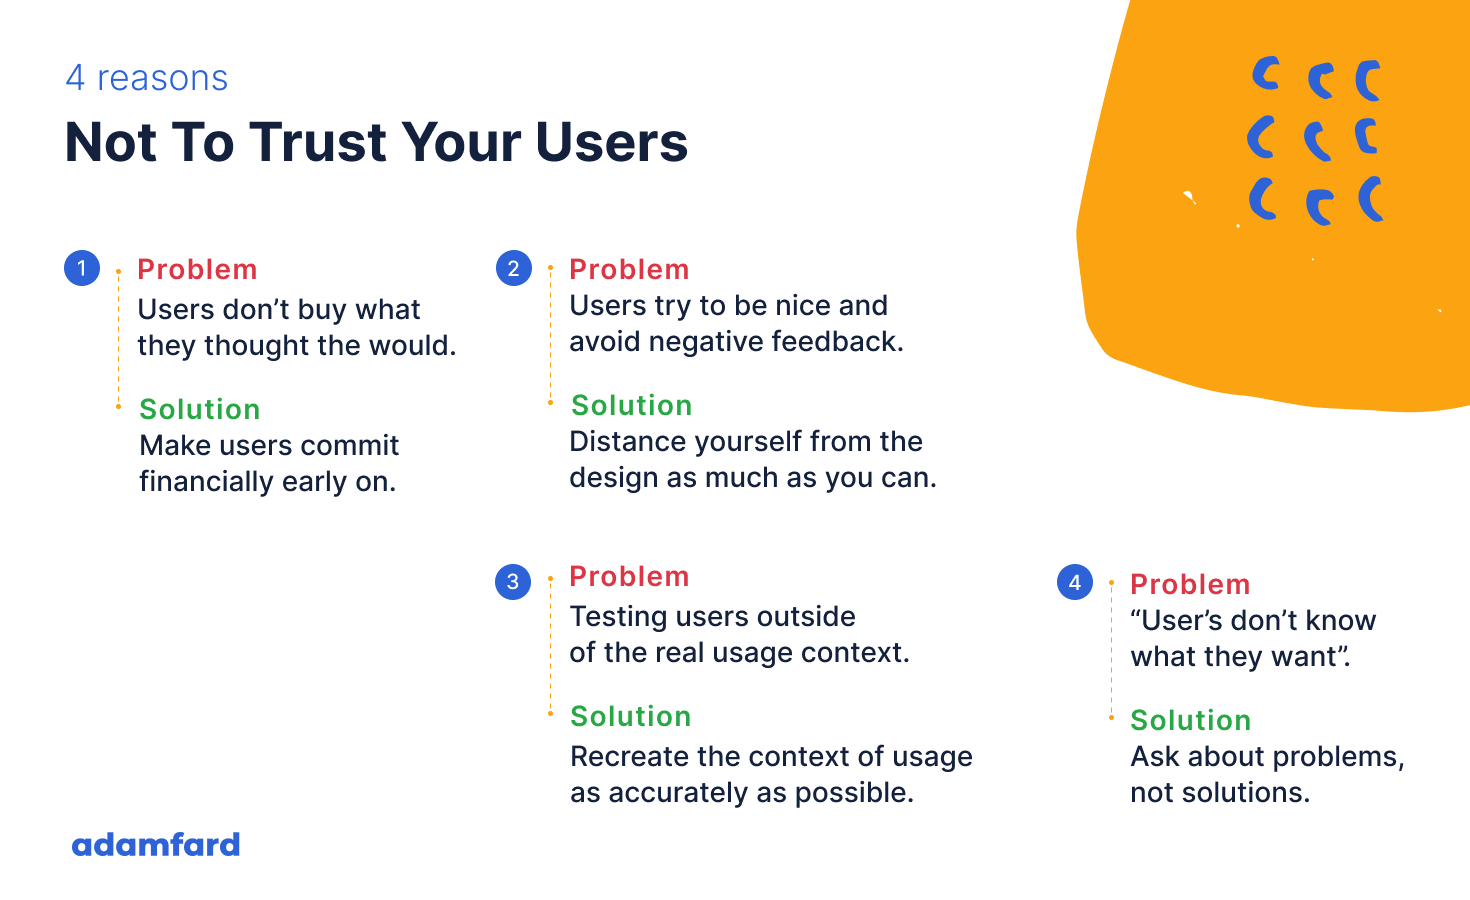 Don't Trust Your Users: Here are the Four Reasons